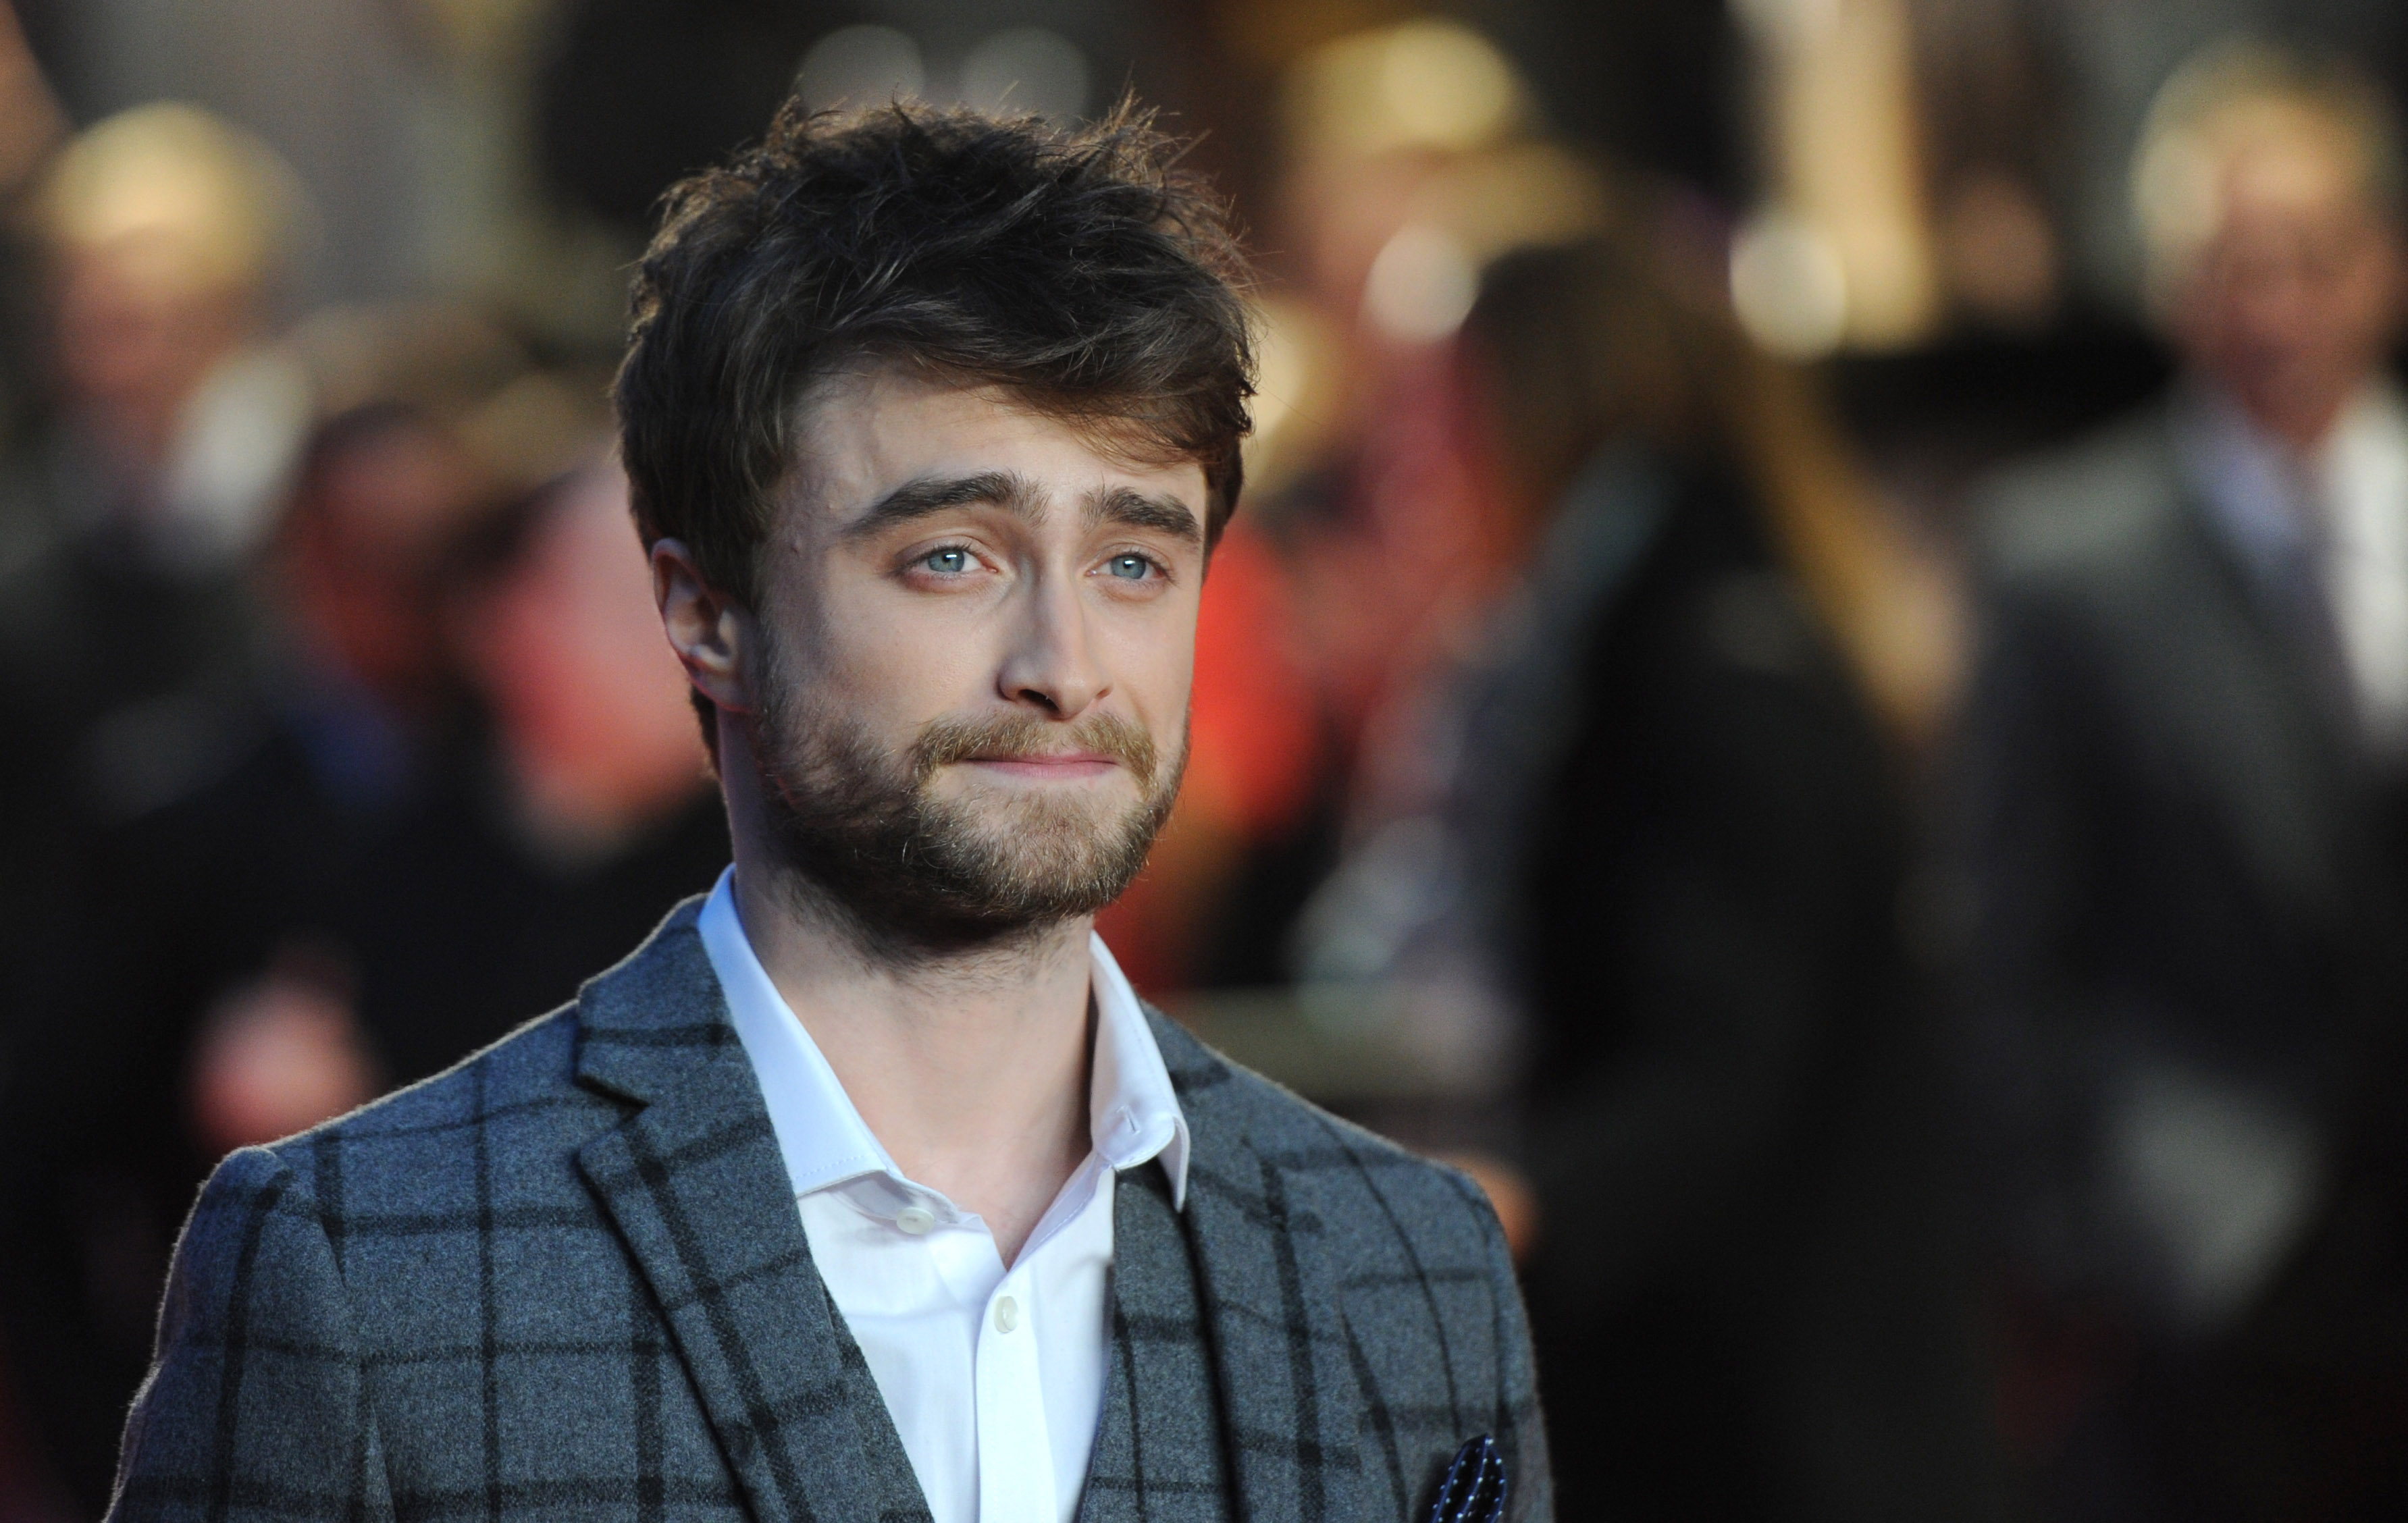 Daniel Radcliffe box office breakdown and upcoming movies